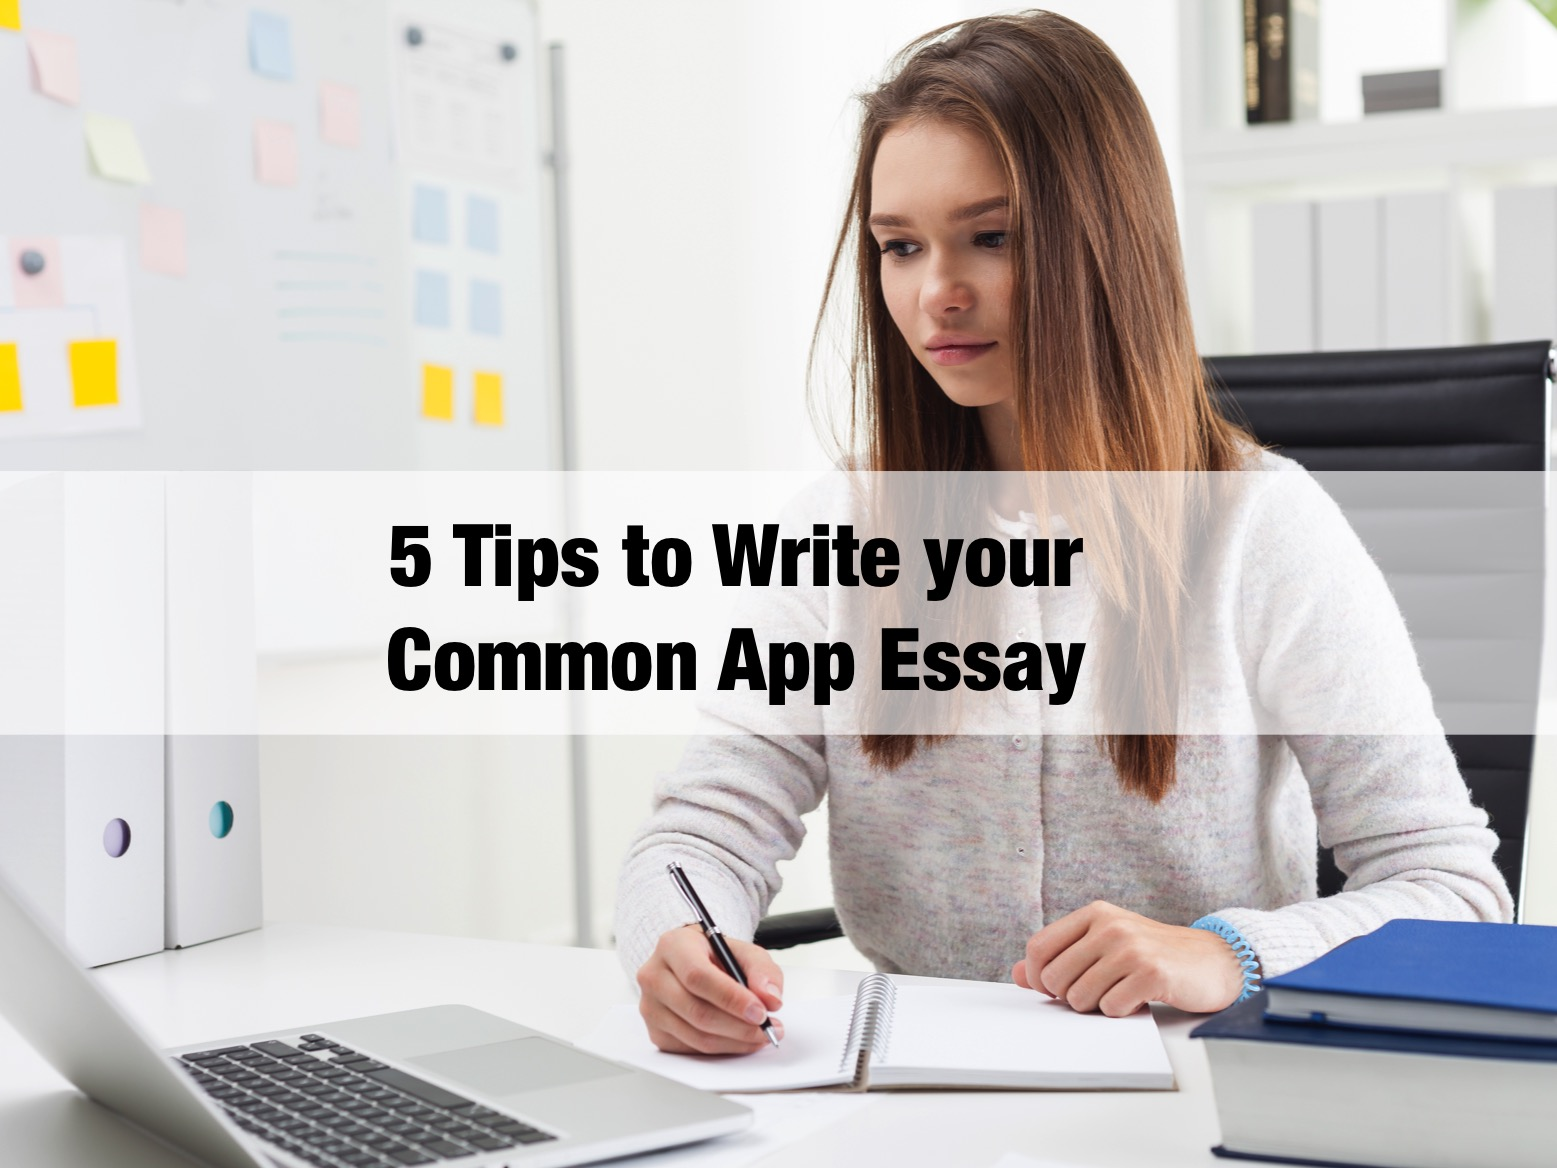 application college essay tip Parents and students often ask us for our most valuable common application essay tips, so our savvy team of advisors compiled a list of simple, effective tricks to use as guidelines while you navigate the tricky waters of college essay writing.